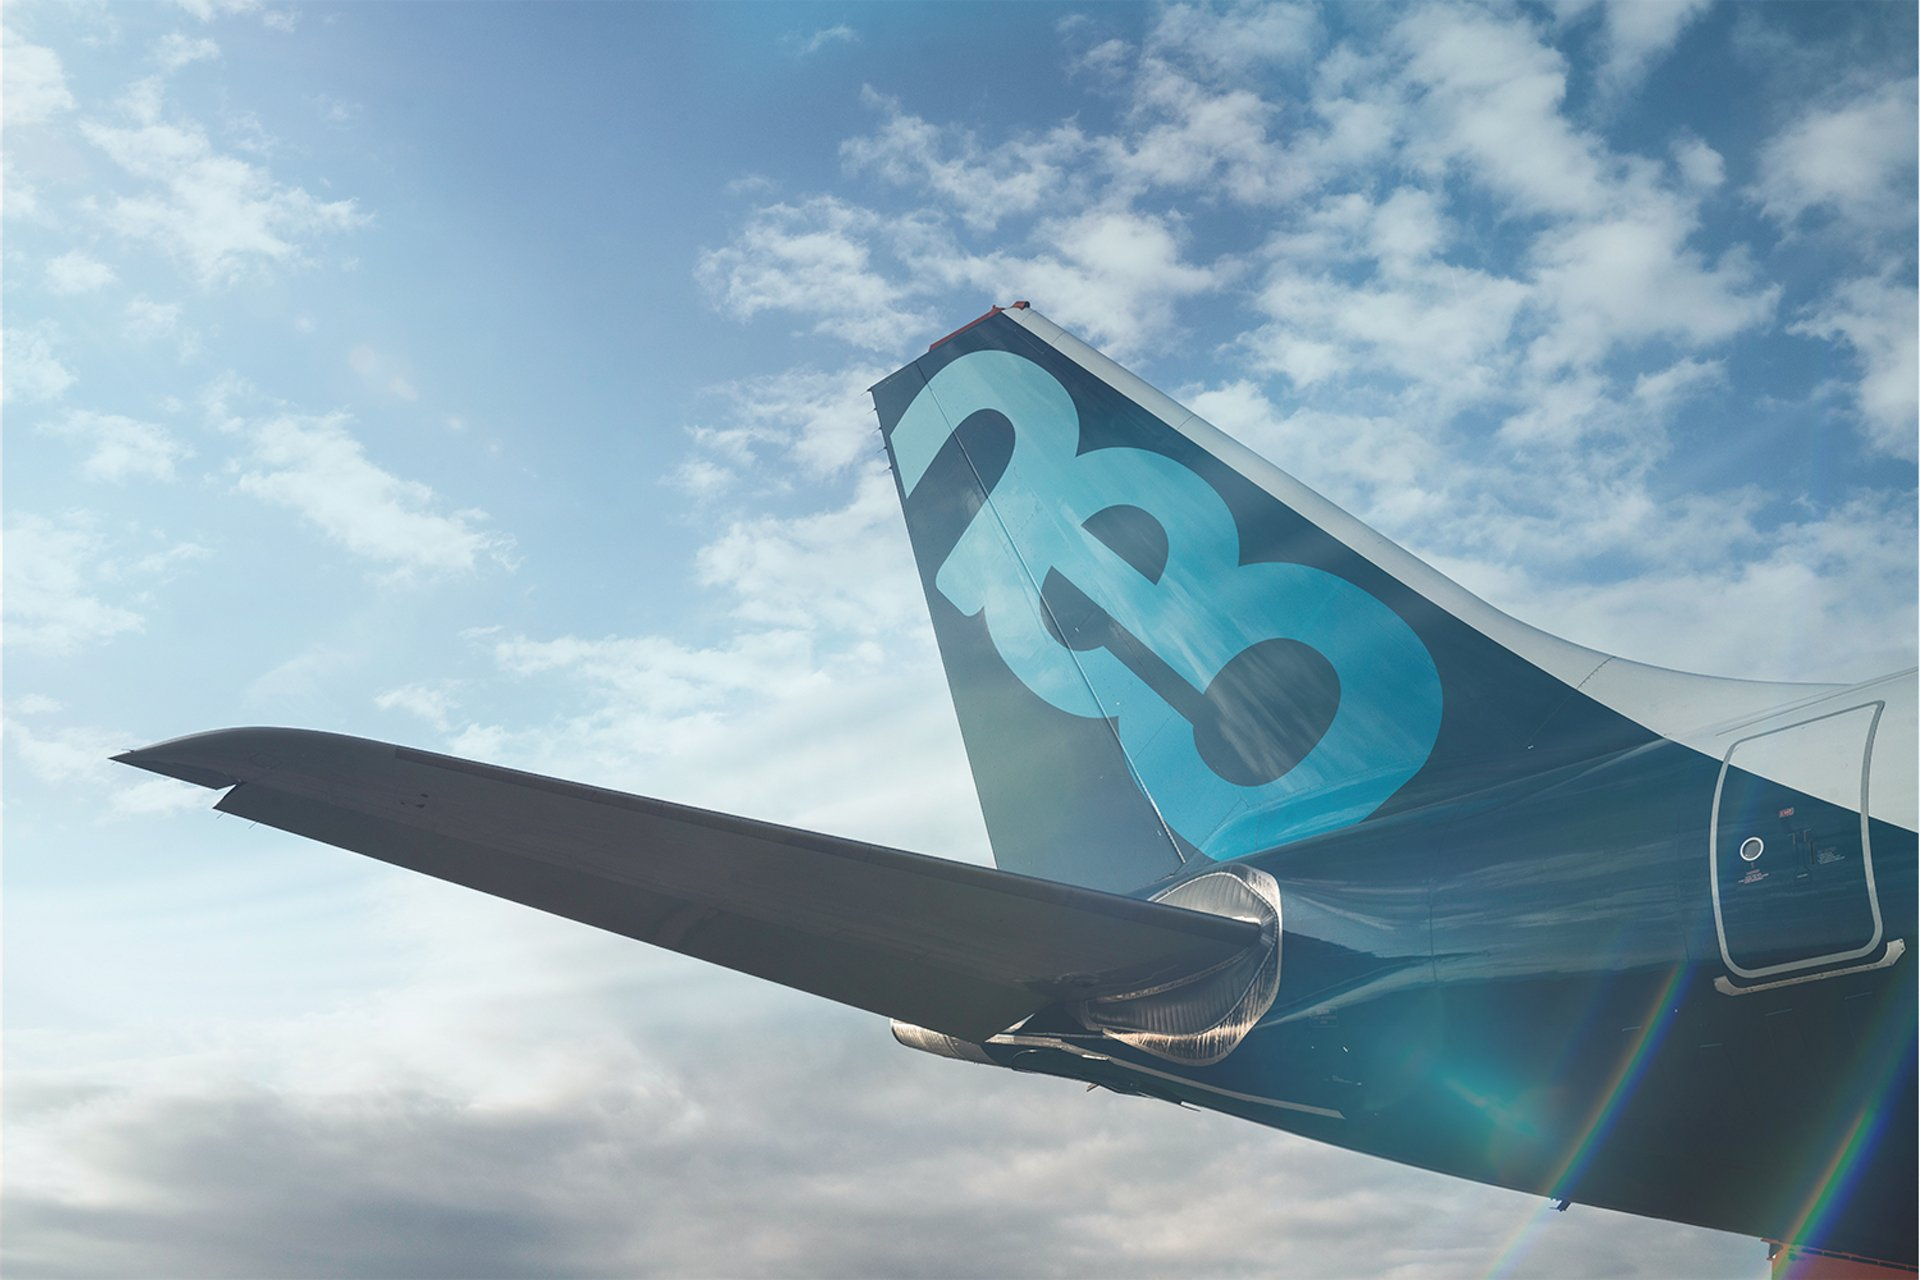 Want to find out more about the A330 family?